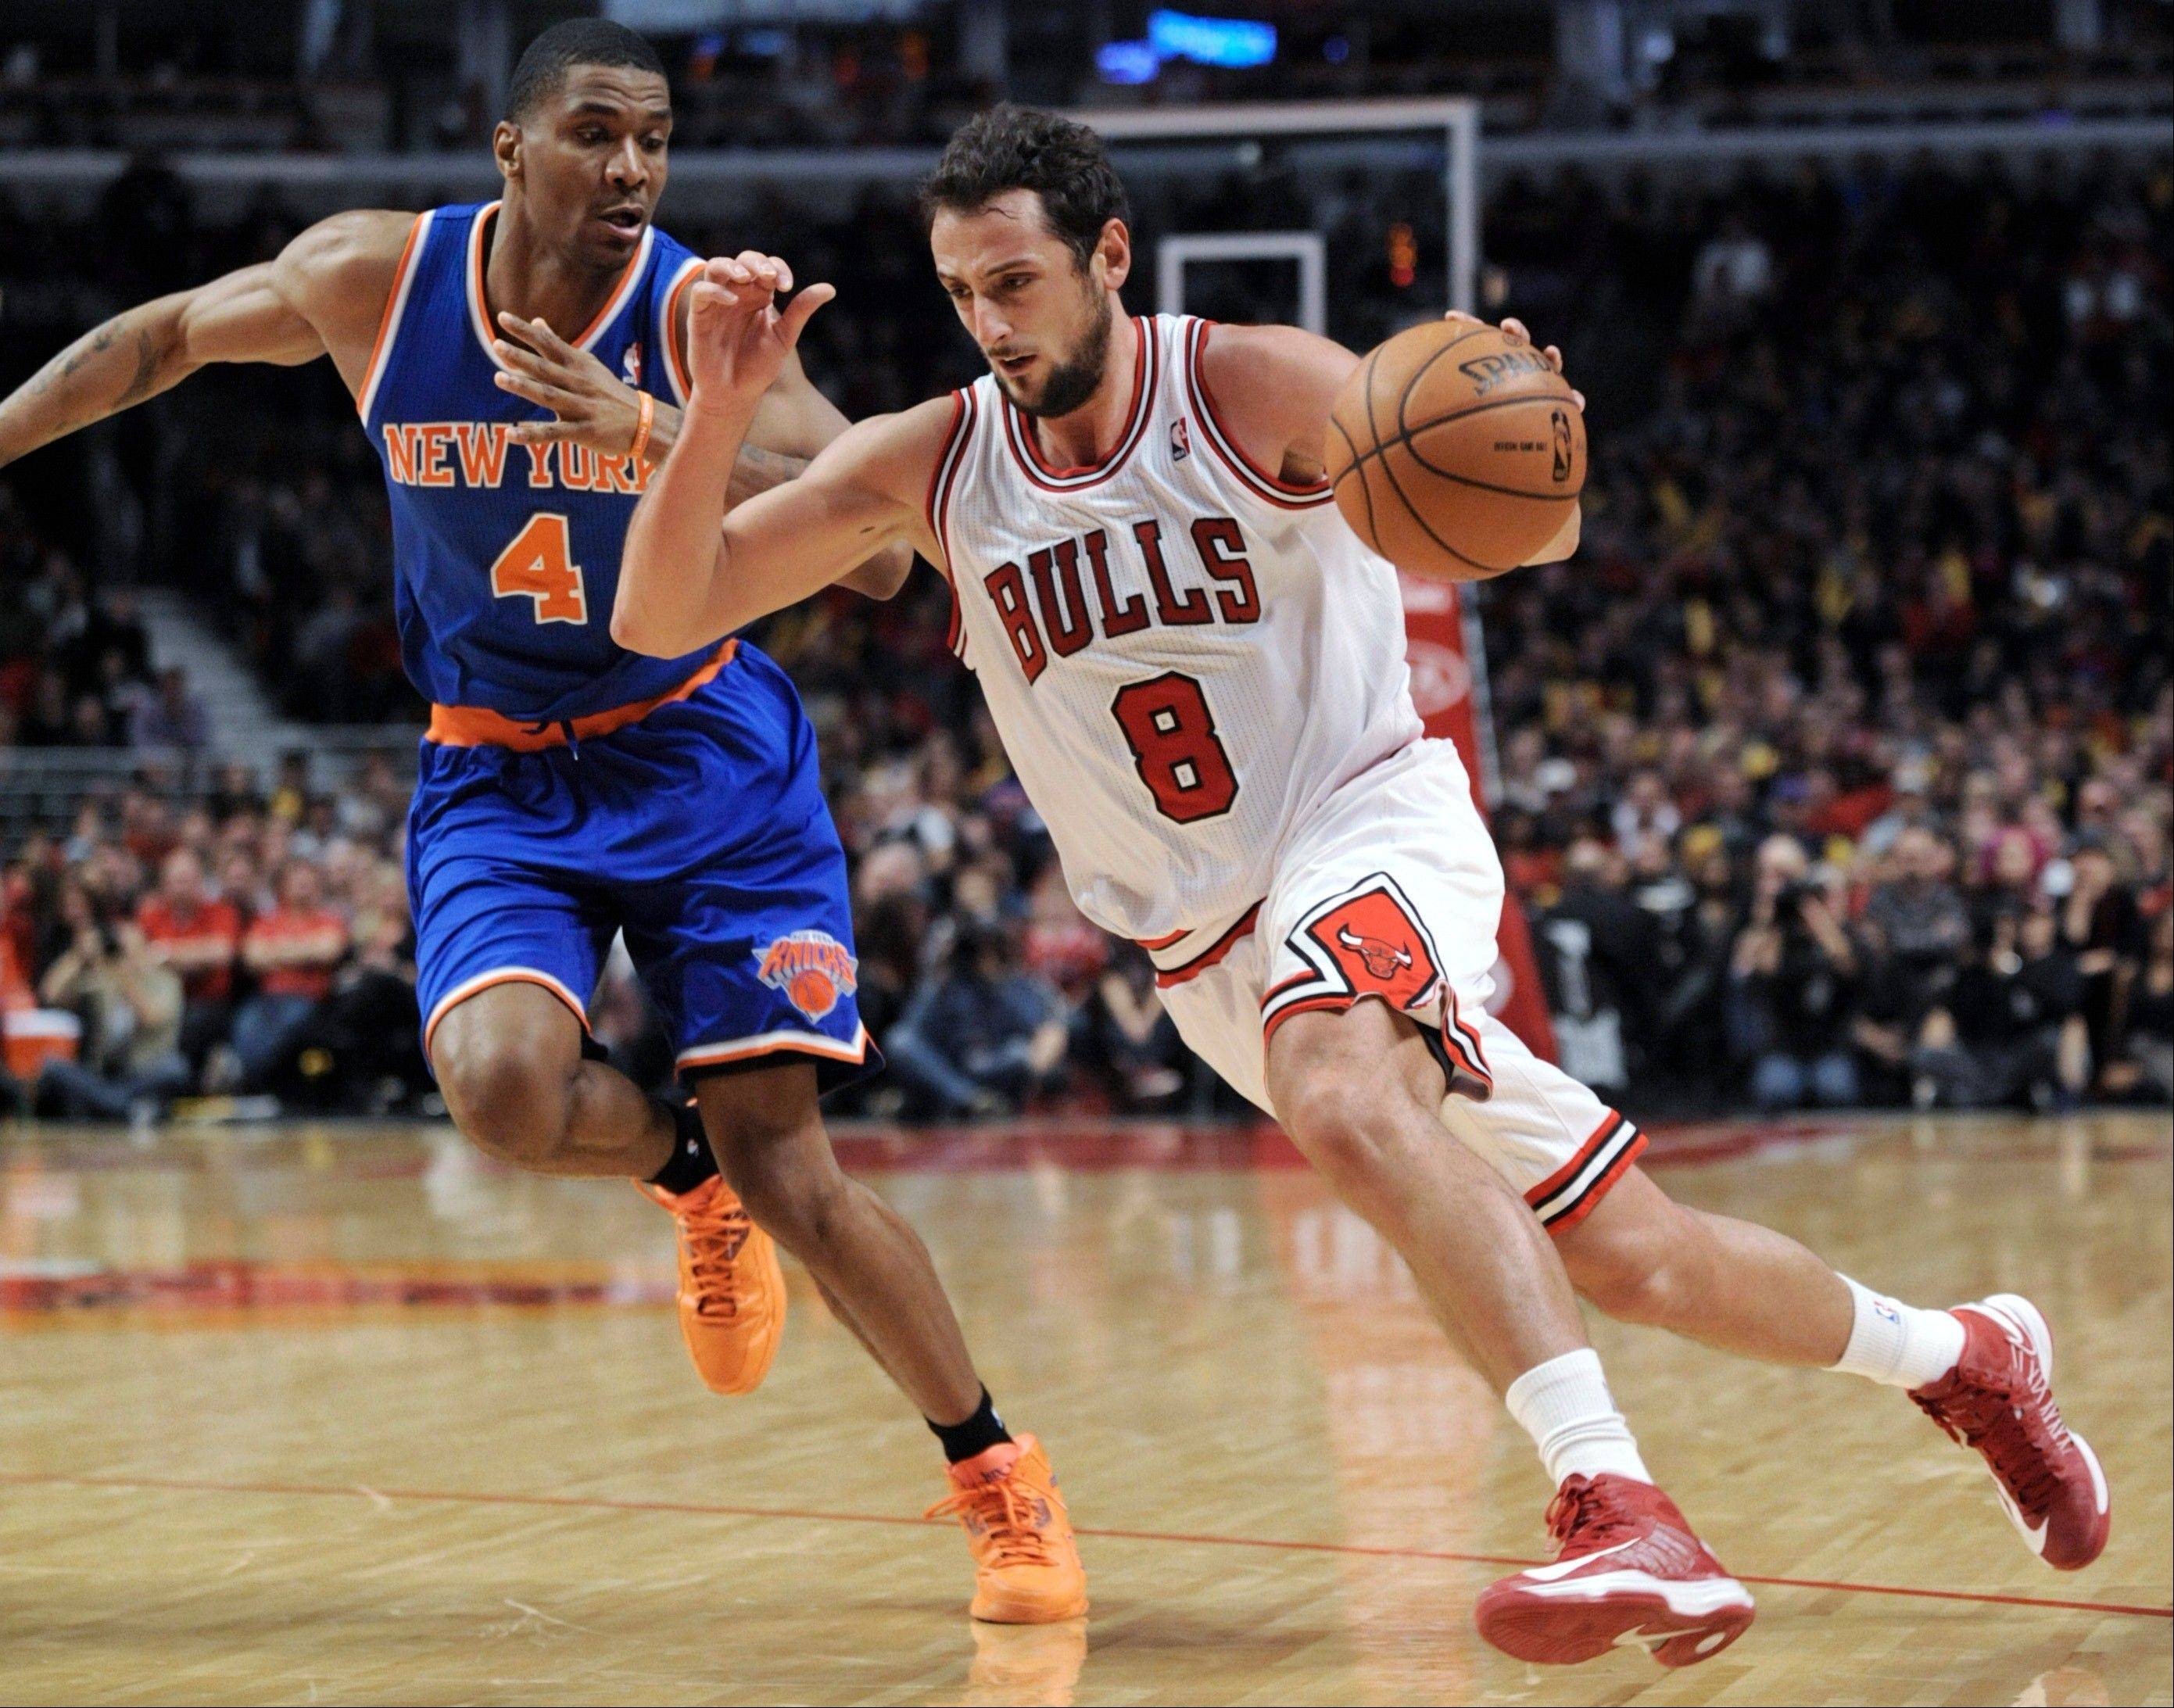 Marco Belinelli drives around the New York Knicks' James White during the fourth quarter of an NBA basketball game in Chicago, Saturday, Dec. 8, 2012. Chicago won 93-85.